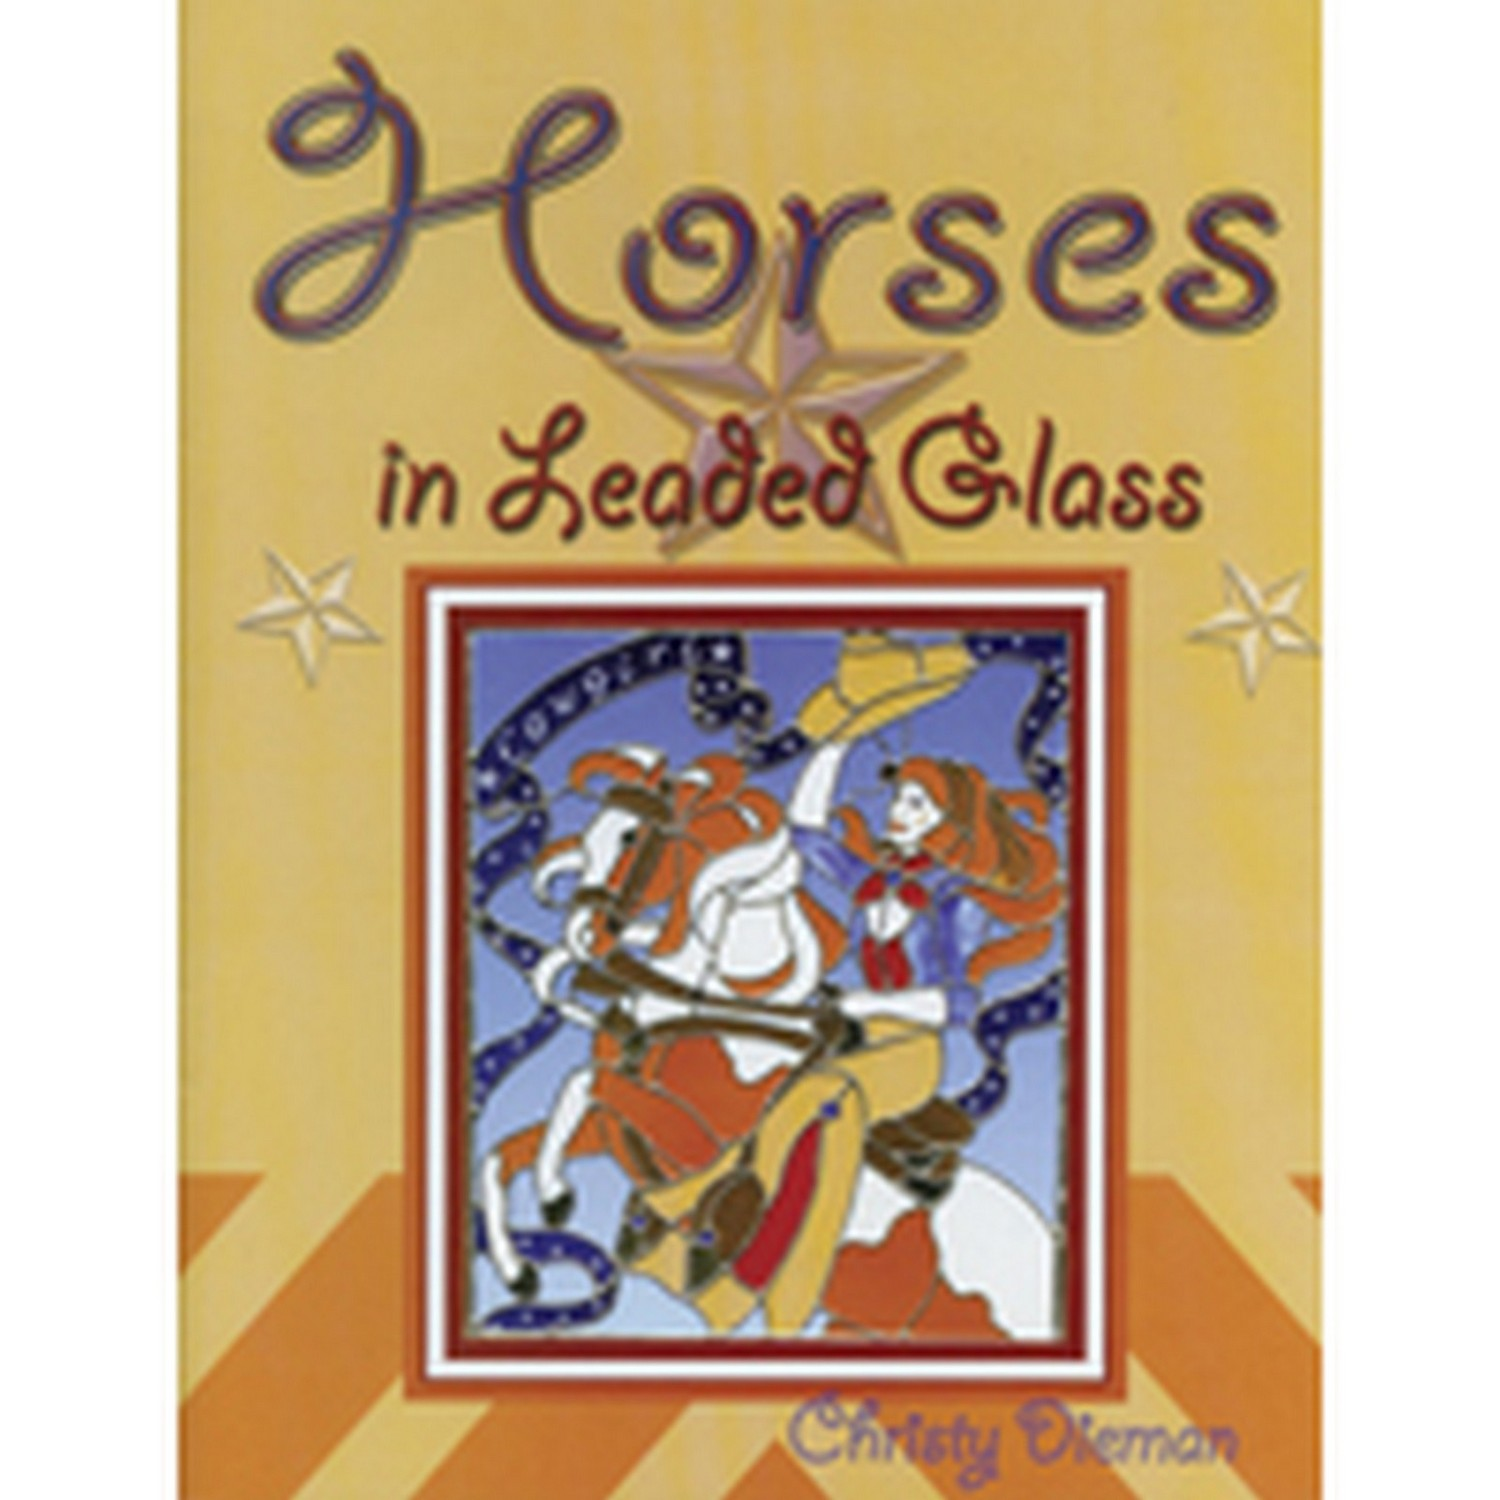 (68091) HORSES IN LEADED GLASS